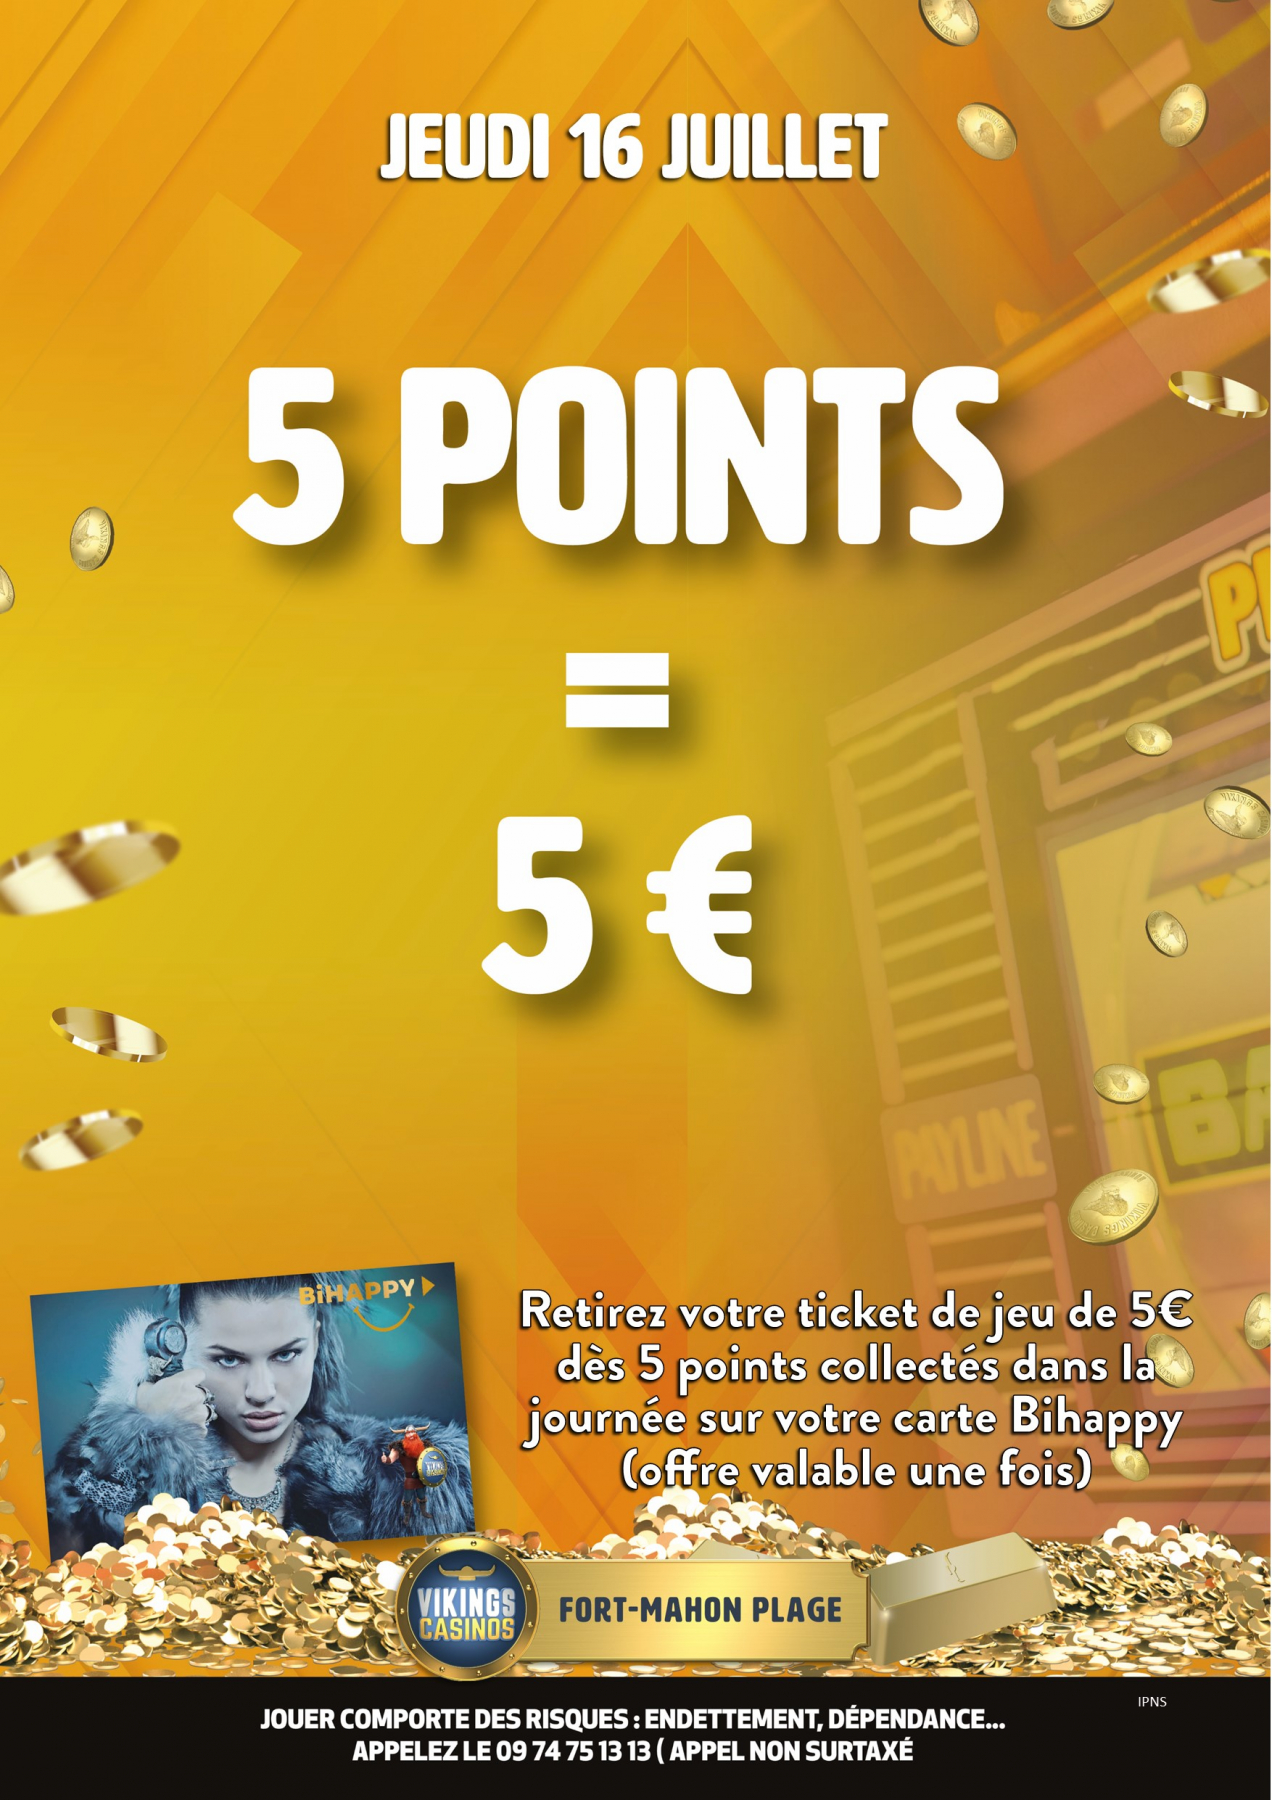 5 points collectés = 5€ en ticket de jeu